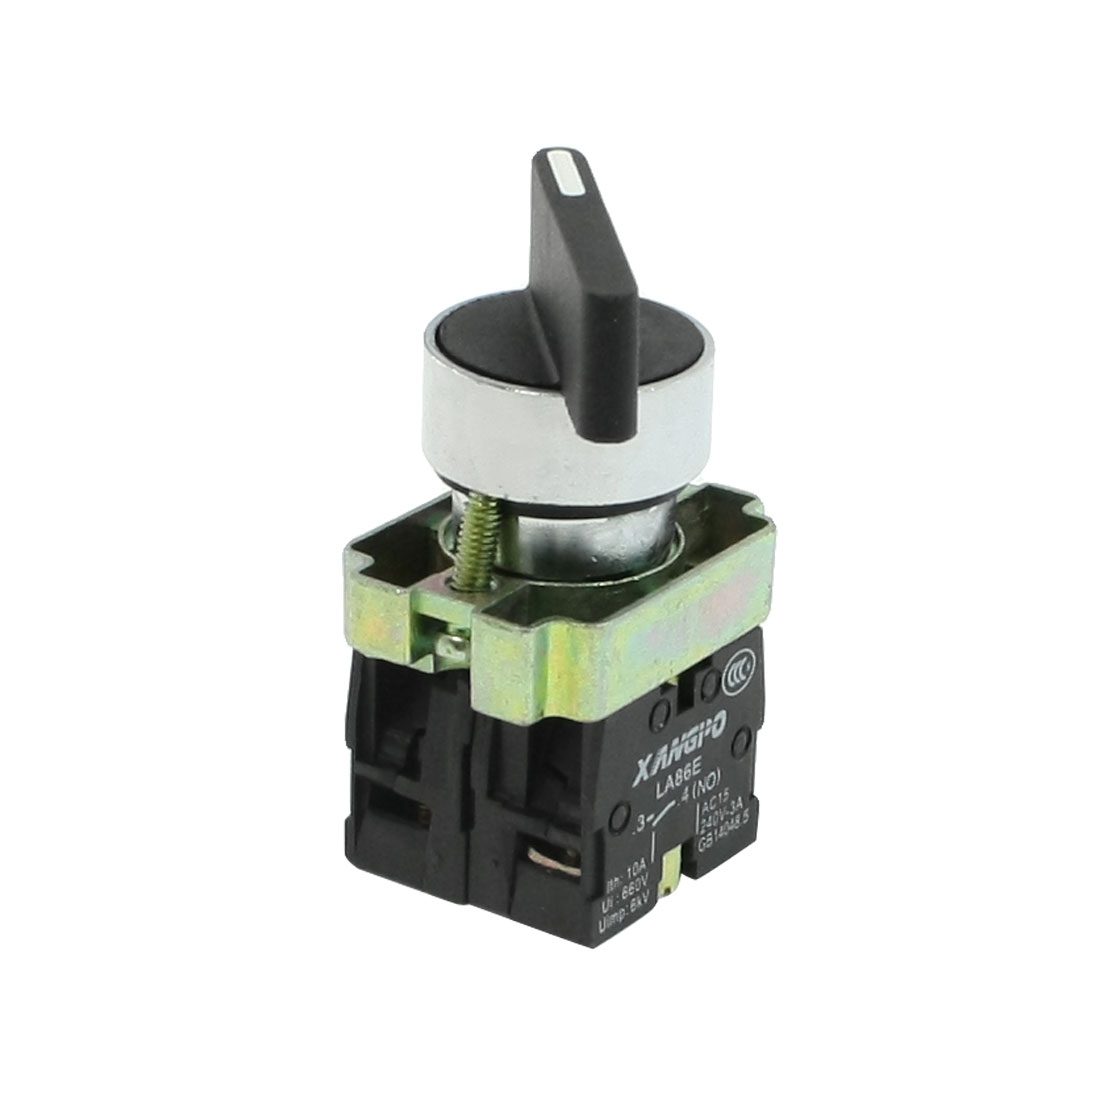 AC240V/3A 1NO 1NC DPST Black Top Selector Self-Locking Rotary Switch